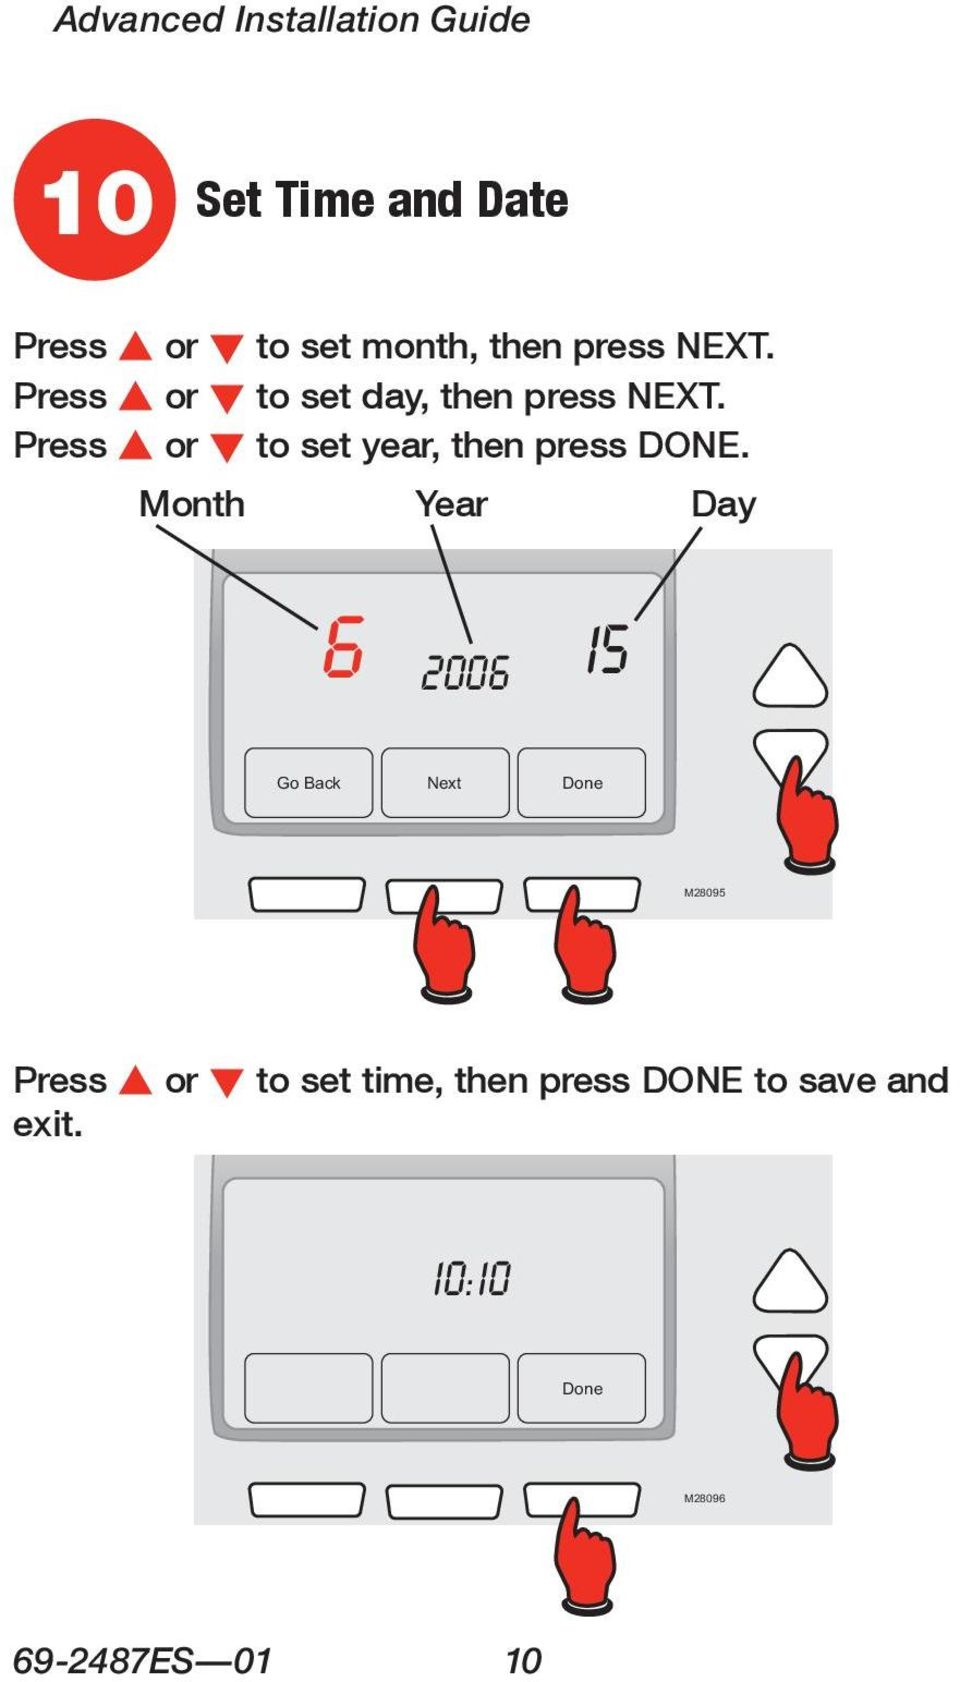 Press s or t to set year, then press DONE.